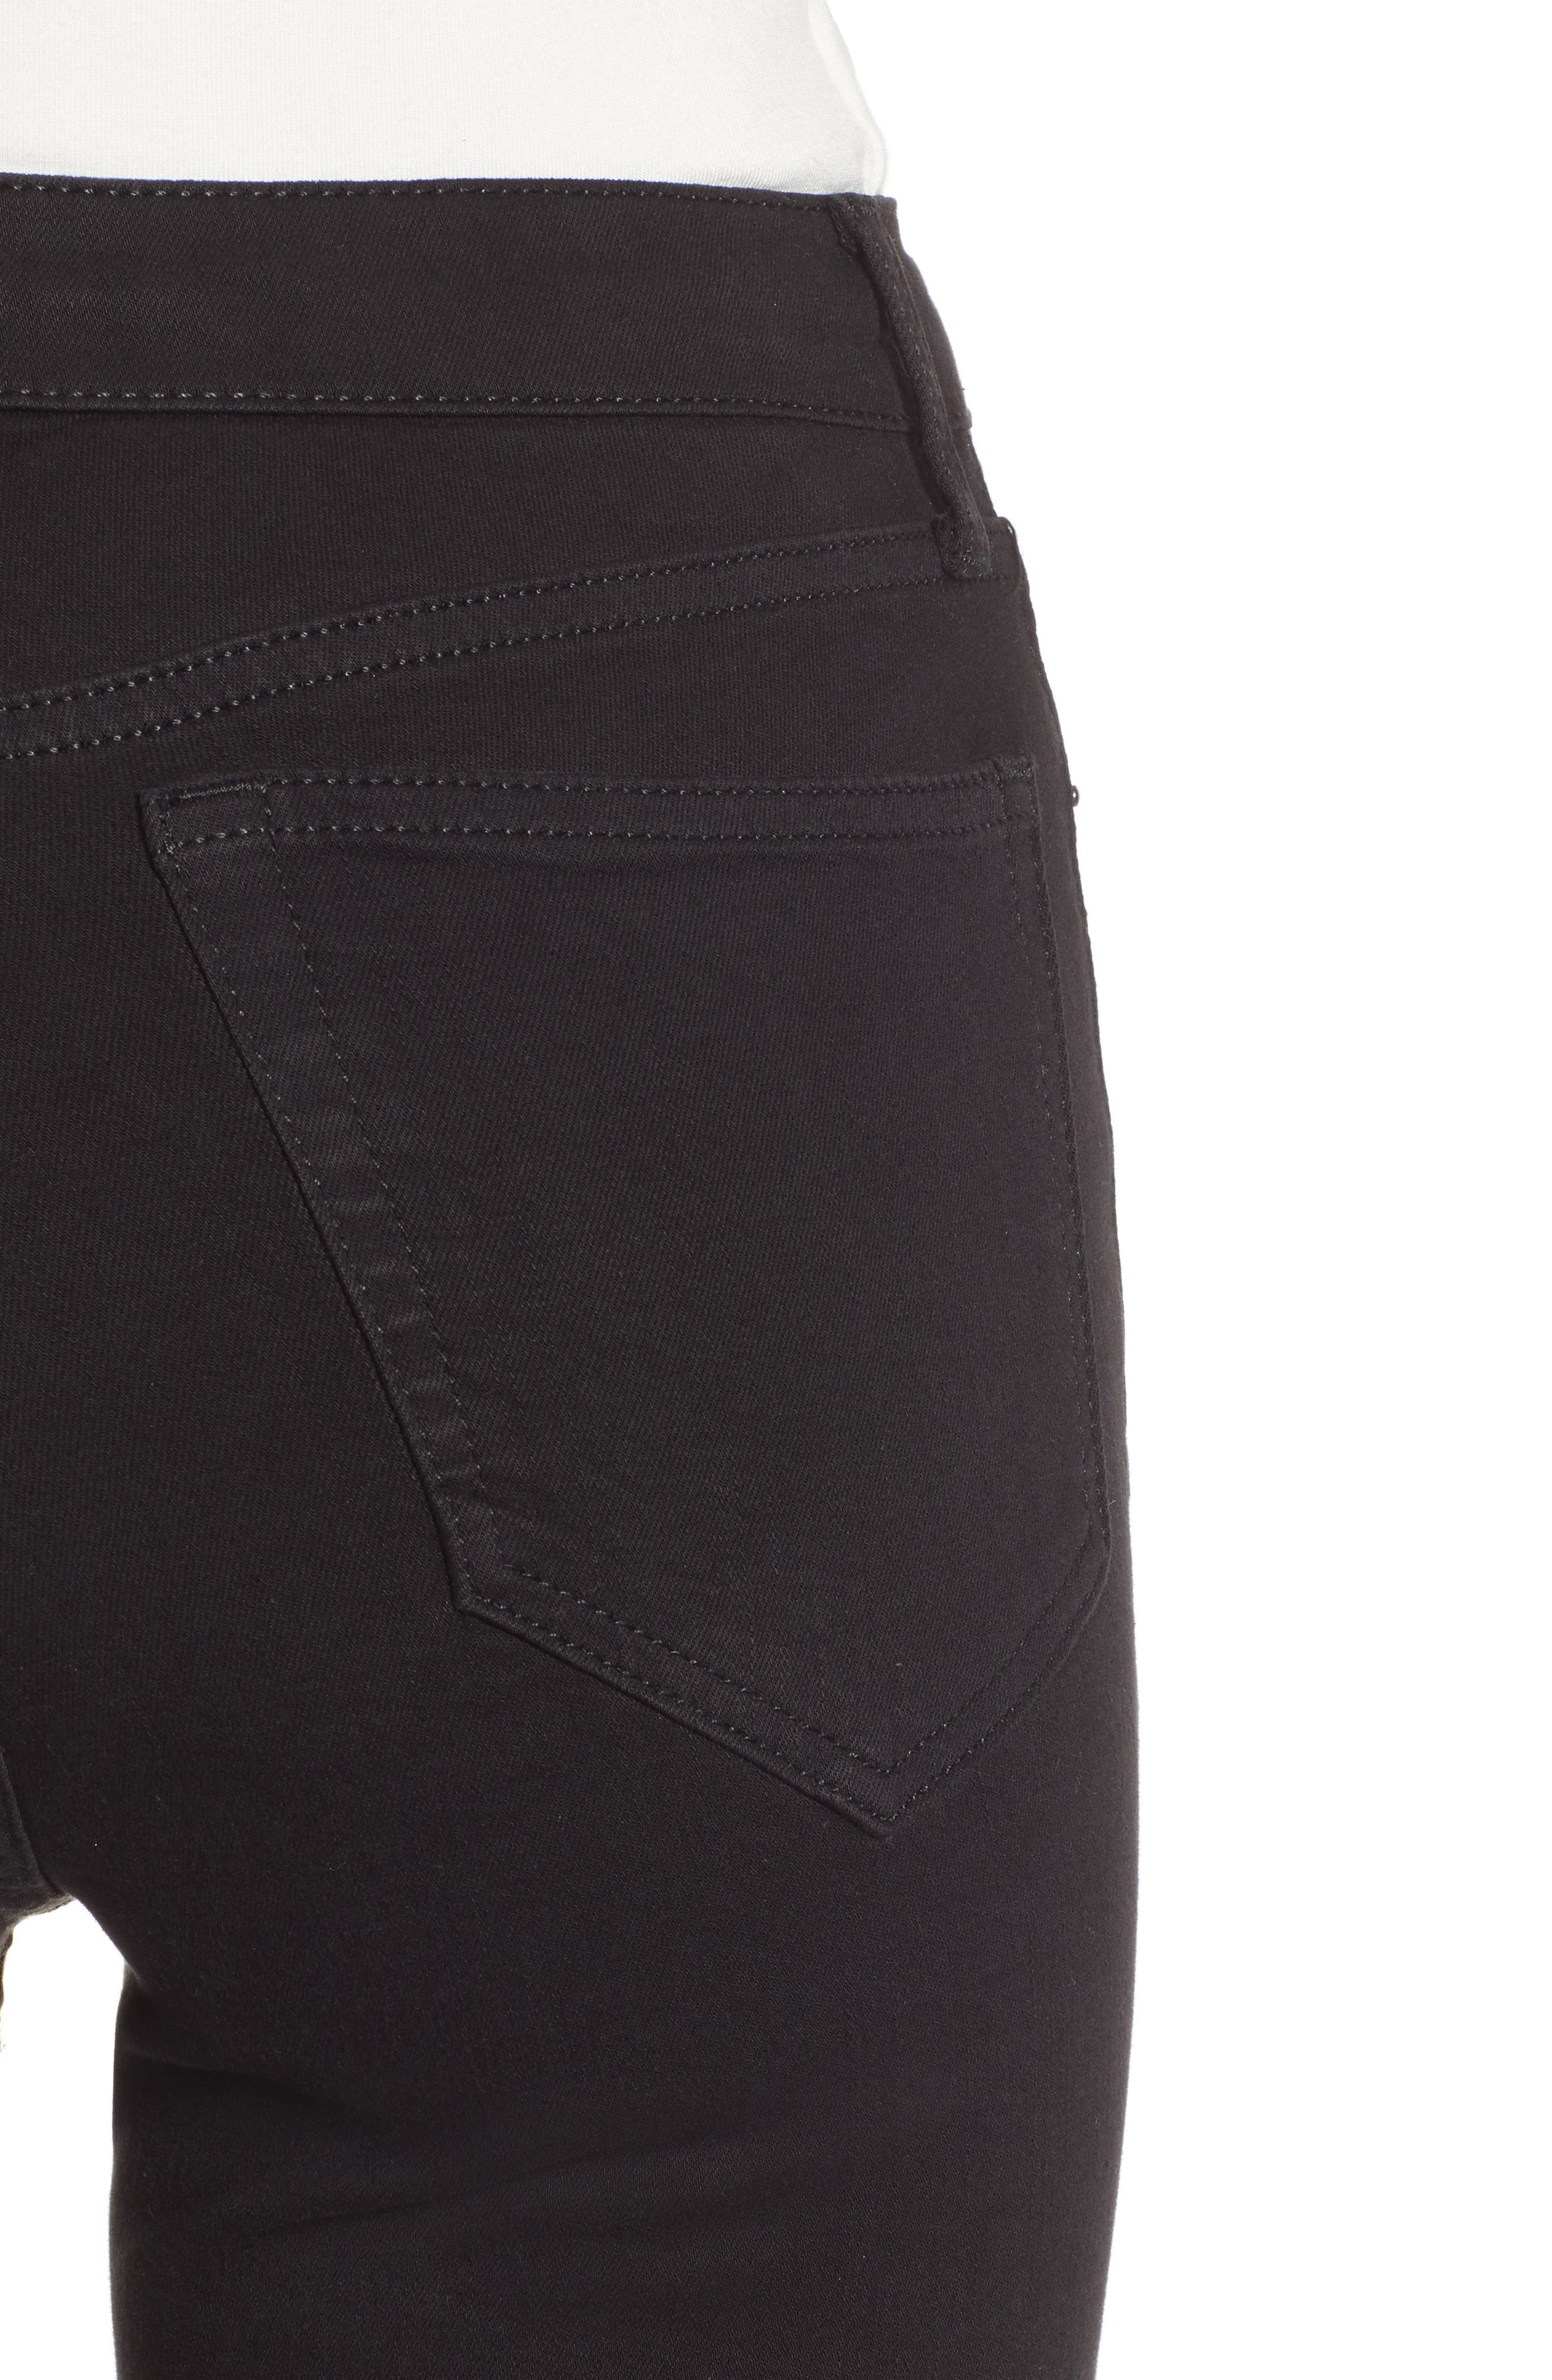 TOPSHOP, Jamie Flare Leg Jeans, Alternate thumbnail 5, color, OPEN BLACK